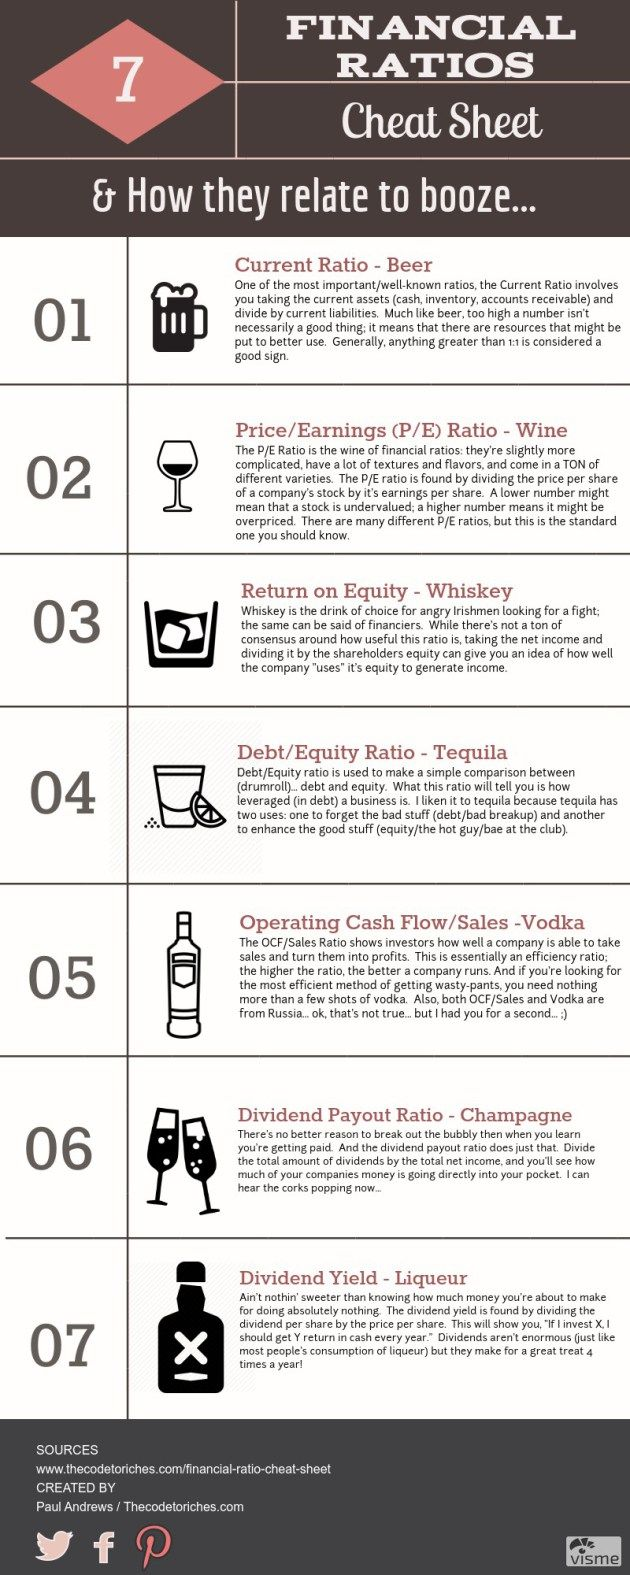 Finance, and math in general, can be so boring sometimes... here's an infographic that relates certain financial ratios to different kinds of booze.  Why?... because it's more fun that way, that's why... :)  http://thecodetoriches.com/financial-ratios-cheat-sheet/